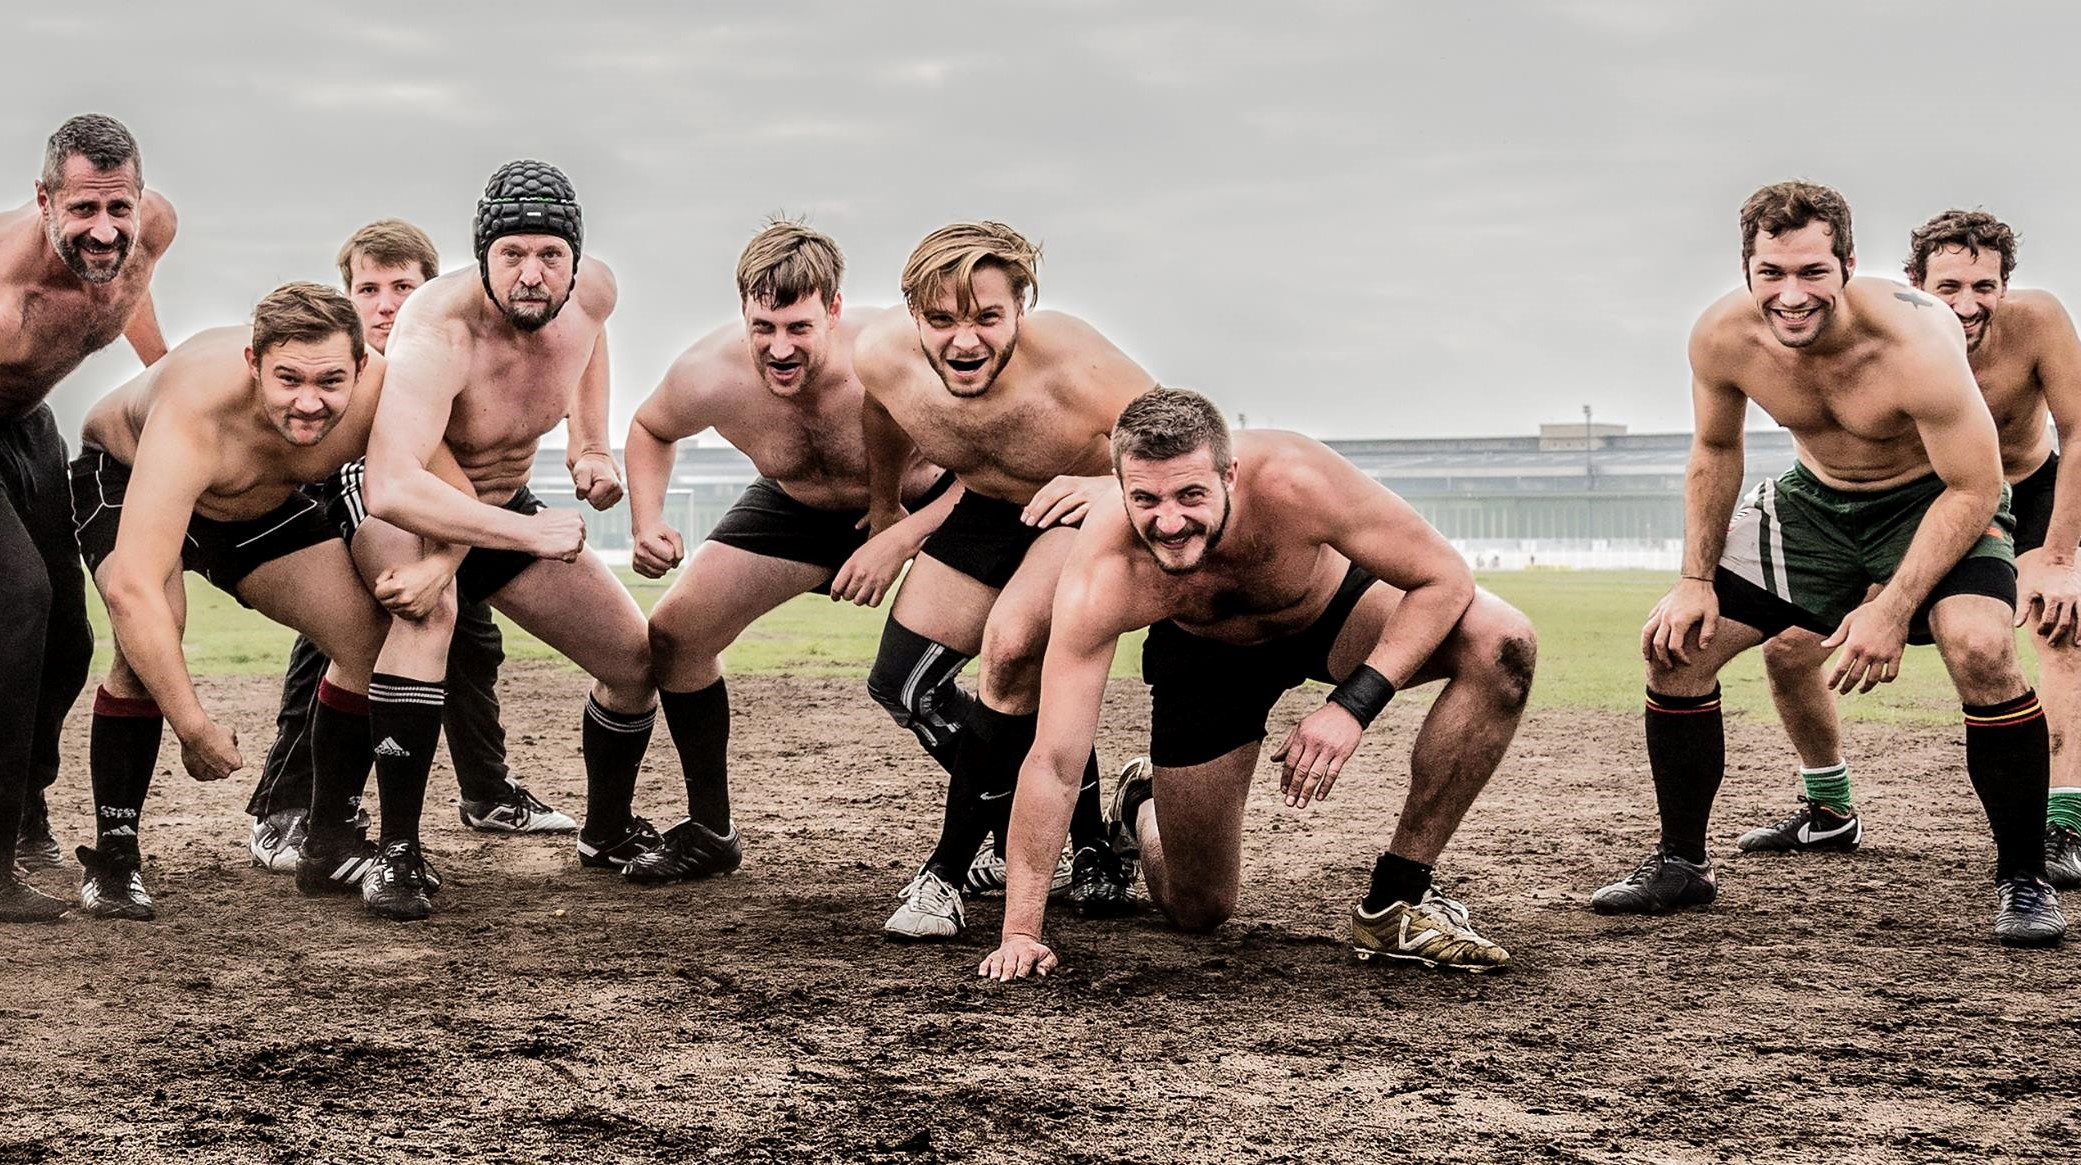 This Gay Rugby Team from Berlin Knows How to Defeat Stereotypes